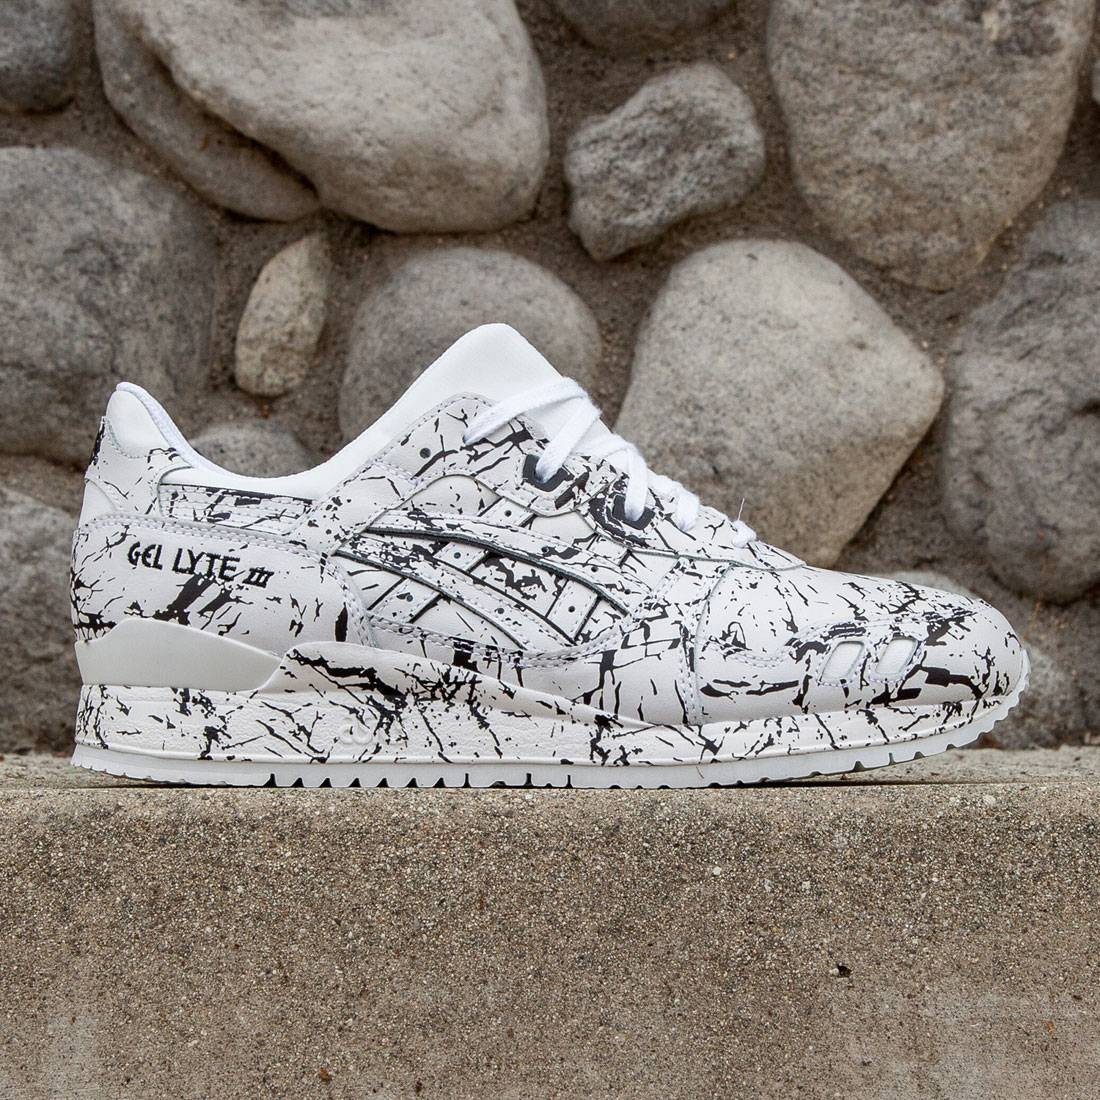 sports shoes 8a81b 6dfb5 Asics Tiger Men Gel-Lyte III - Marble Pack (white / white)